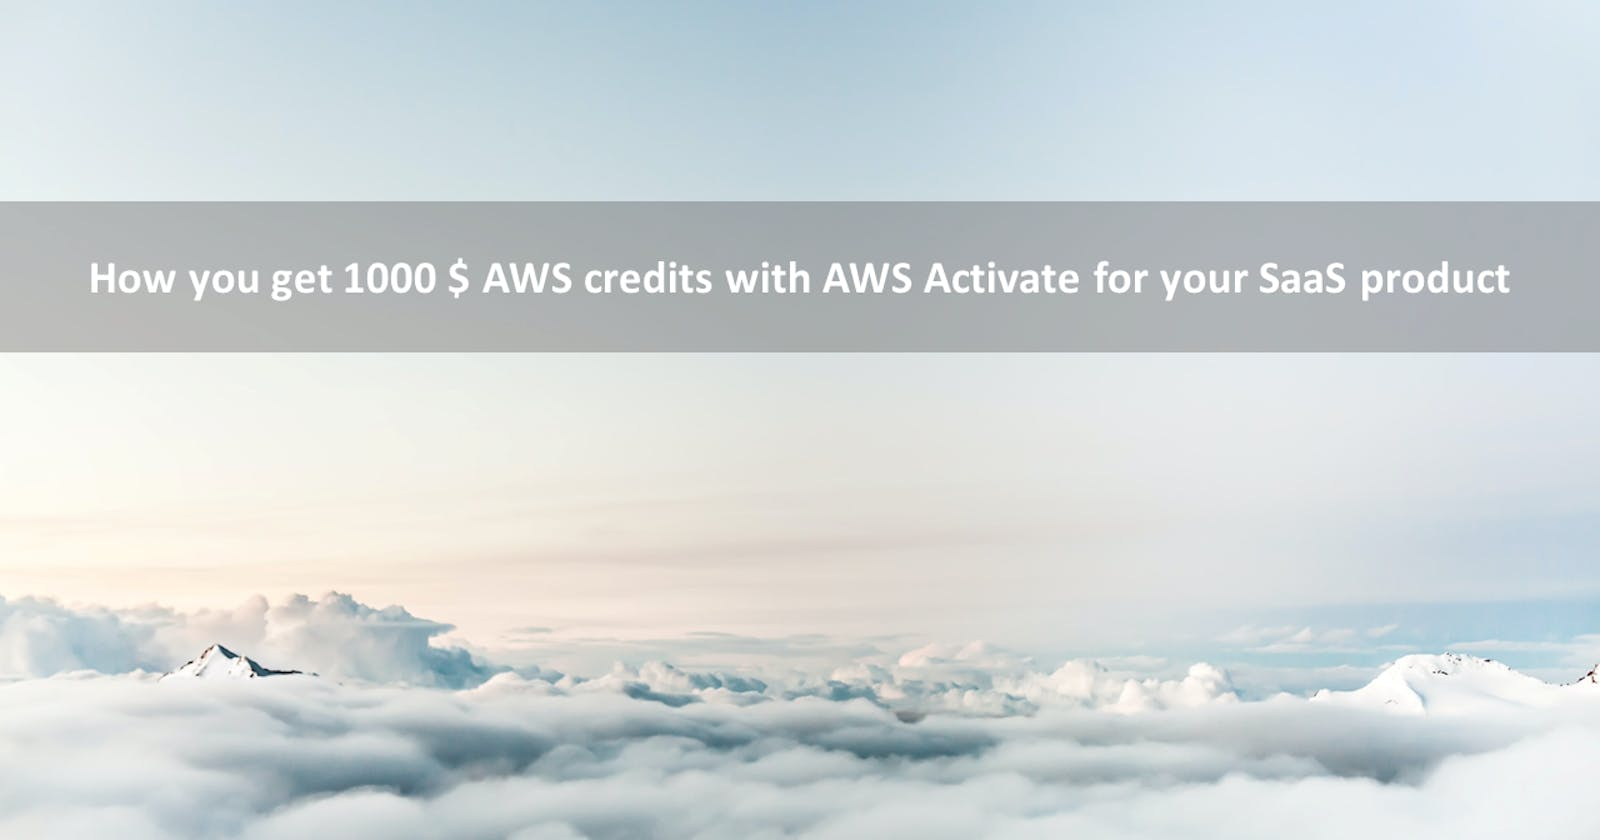 How you get 1000 $ AWS credits with AWS Activate for your SaaS product